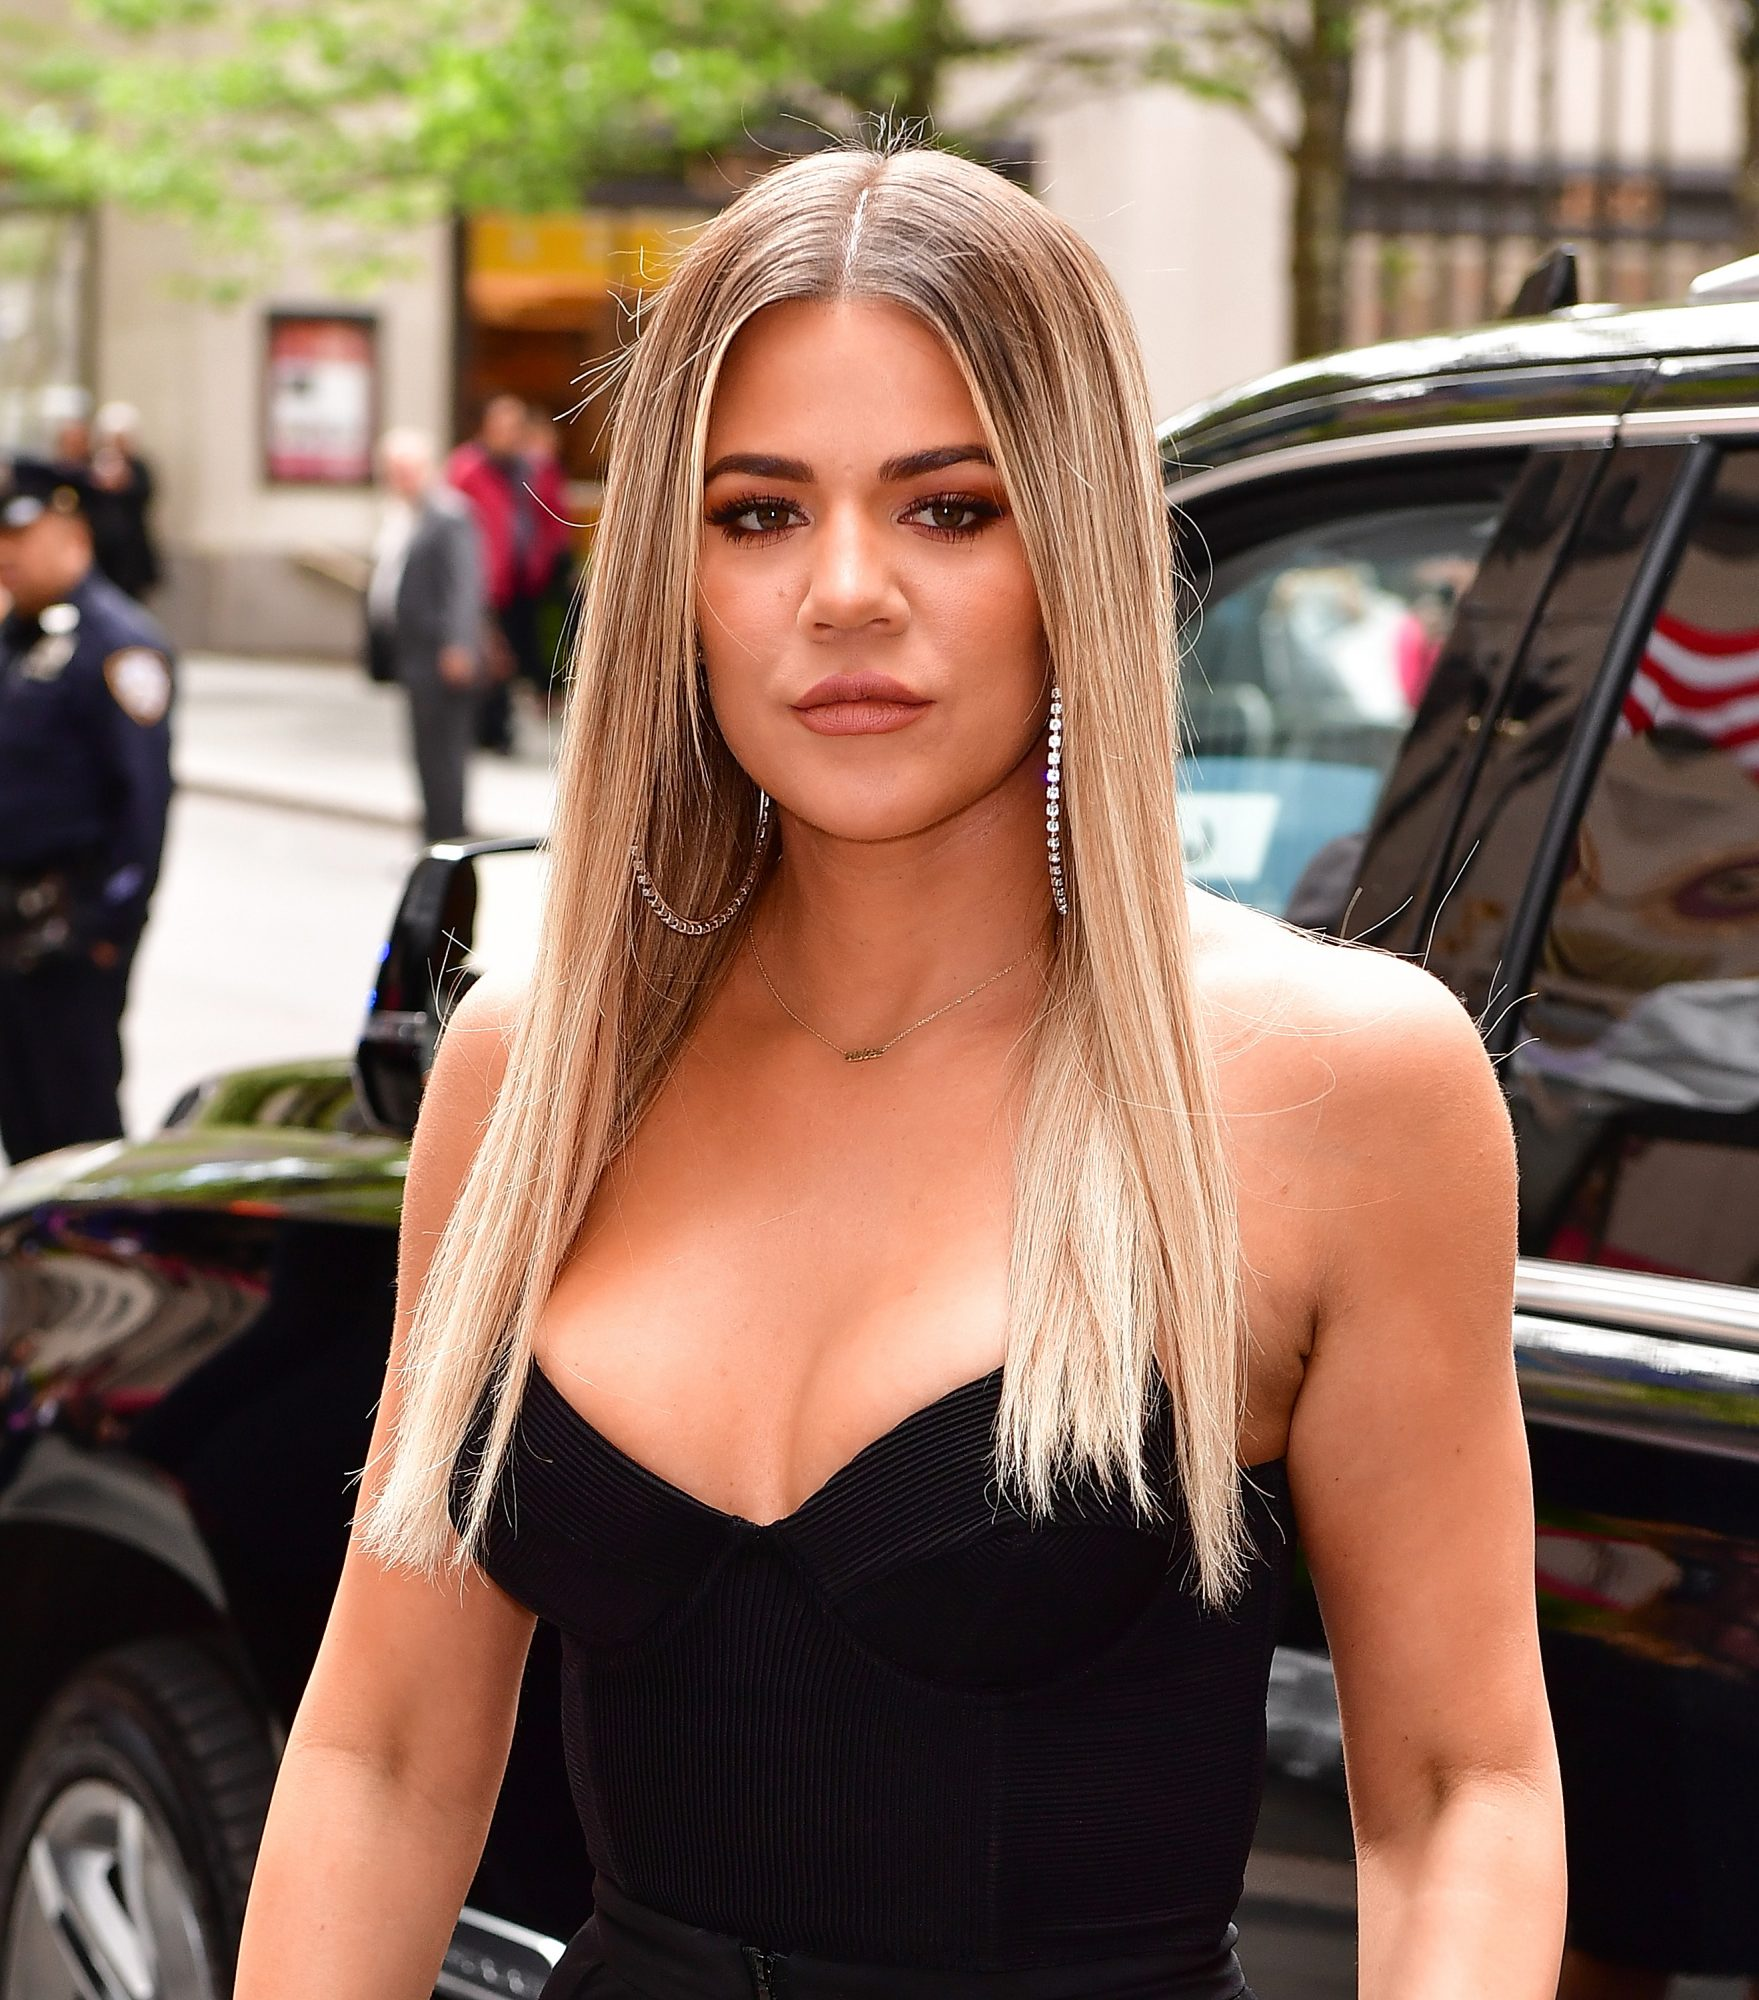 Khloé Kardashian Reveals She's Lost 33 Lbs. (in 3 Months!) Since Giving Birth to Baby True